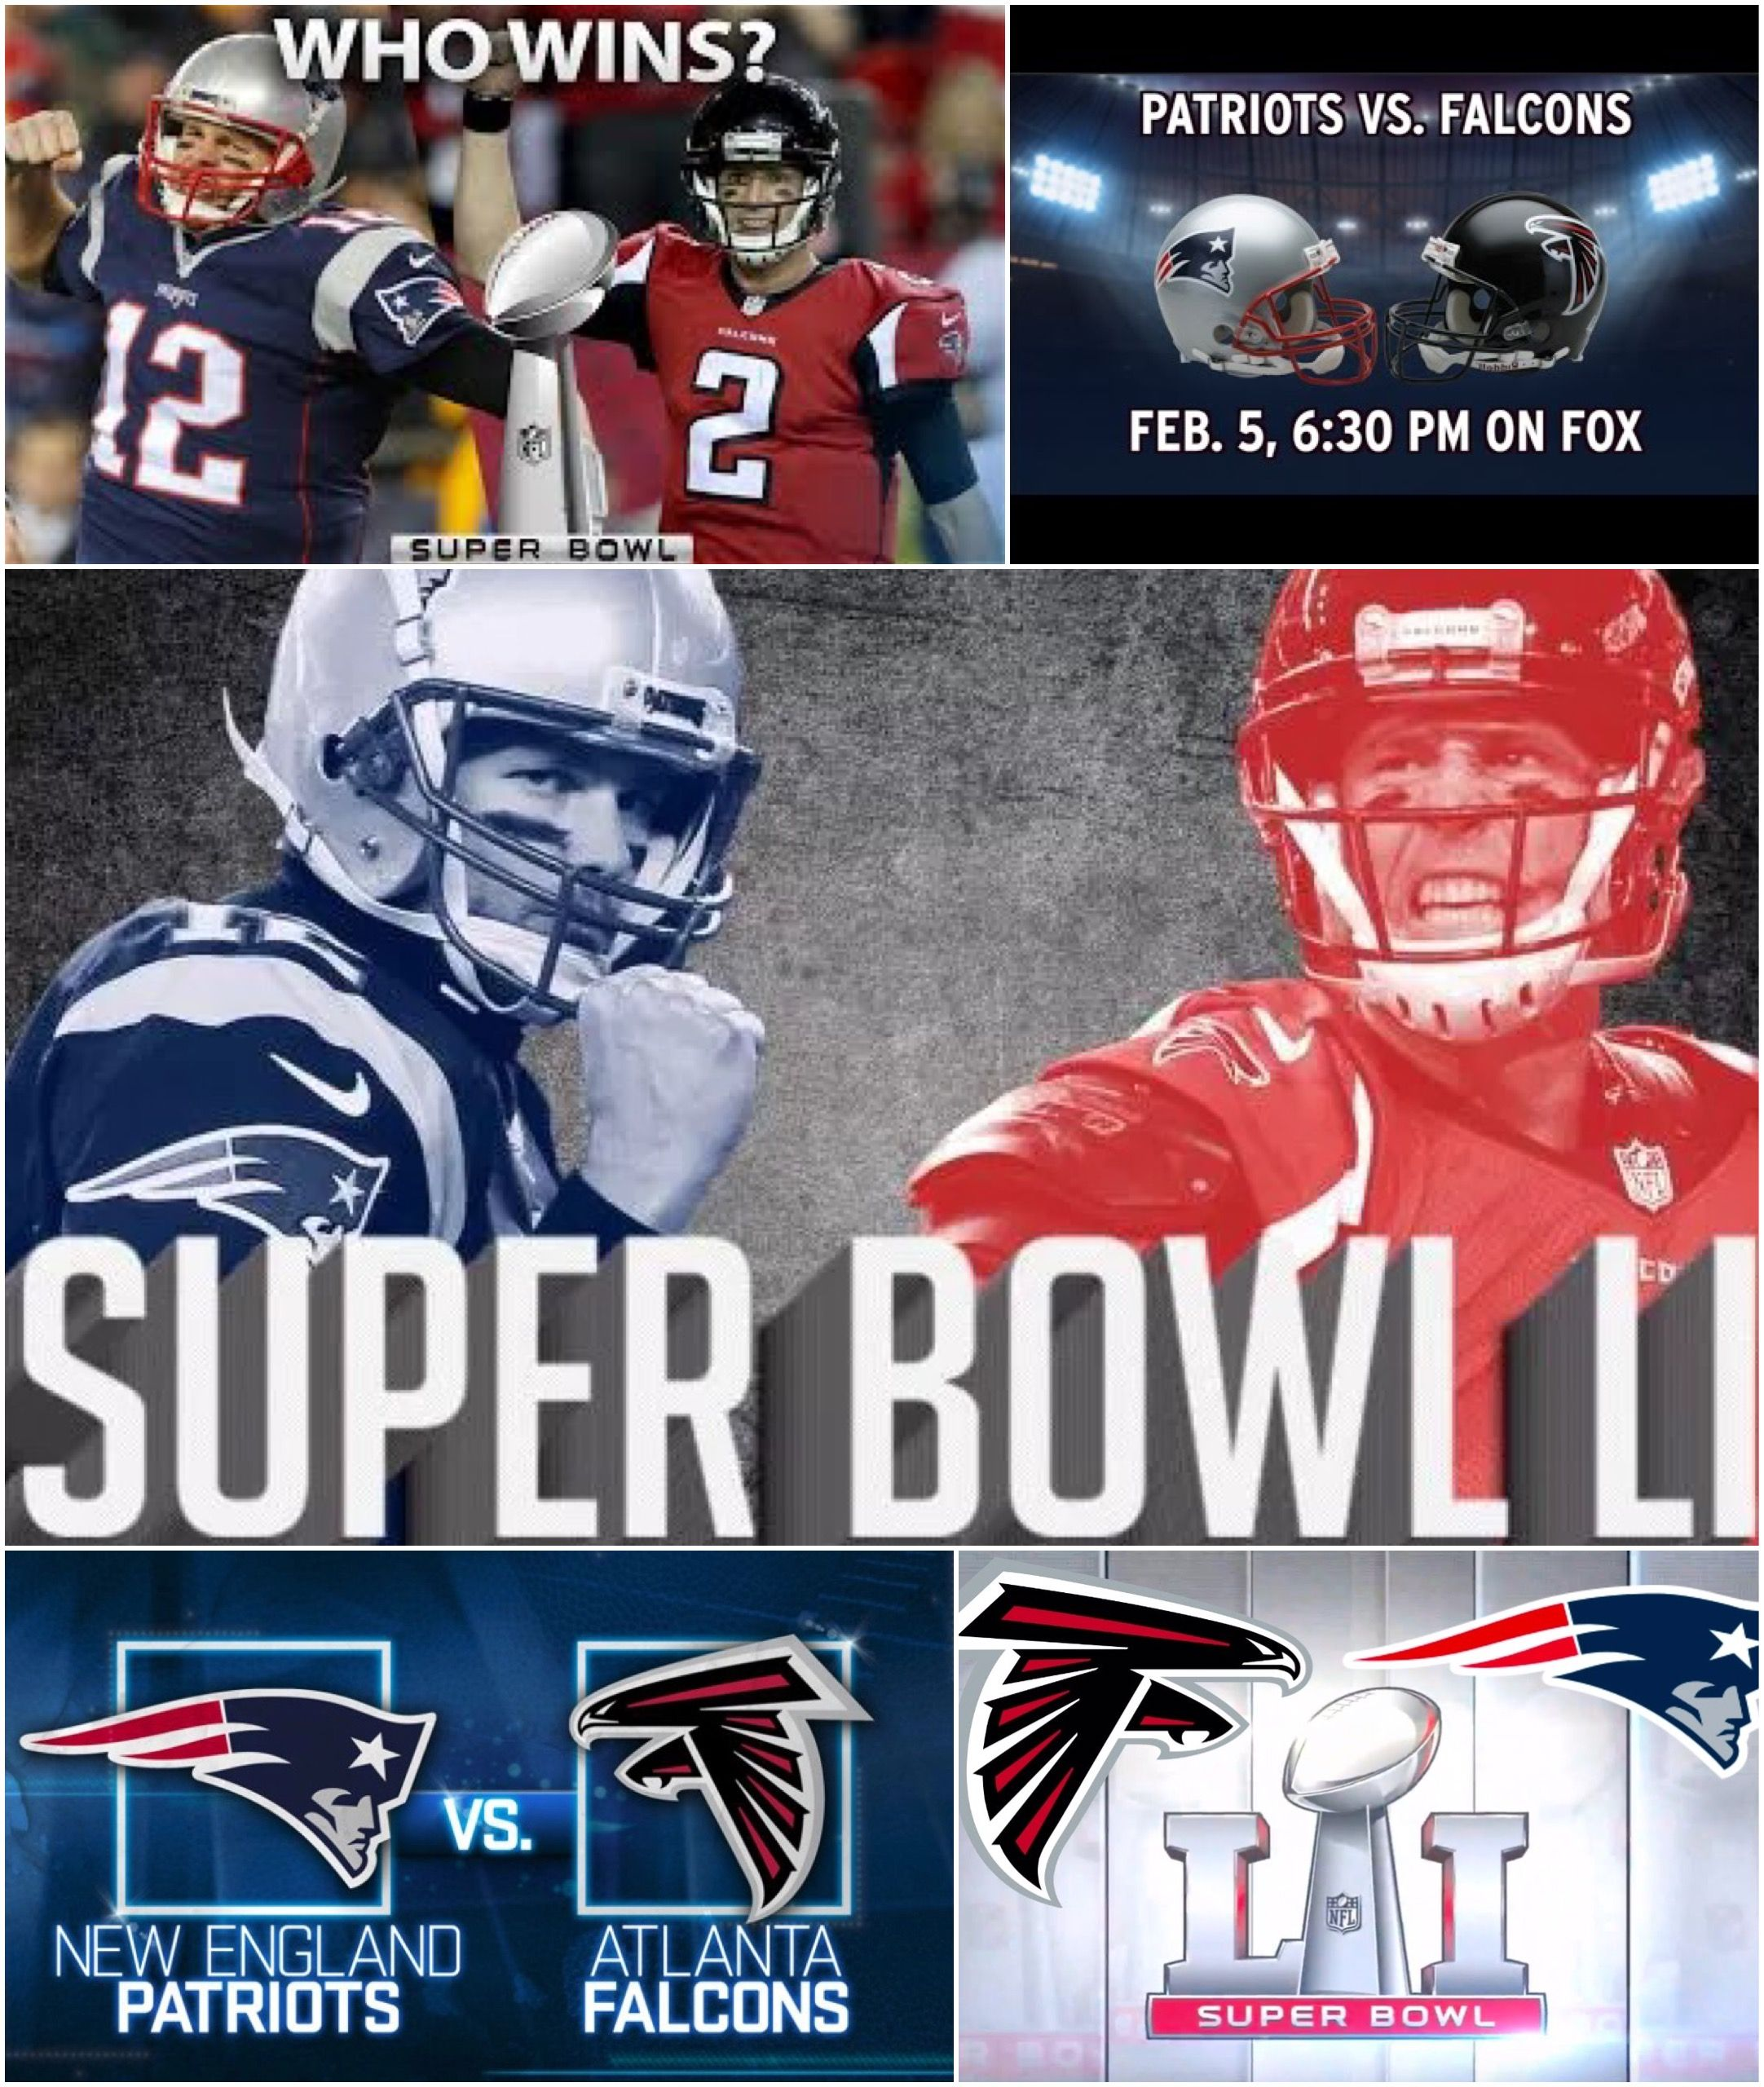 Superbowl51 Is Nearly Upon Us As The Newenglandpatriots And Atlantafalcons Clash New England Patriots Logo Atlanta Falcons Football Atlanta Falcons Pictures